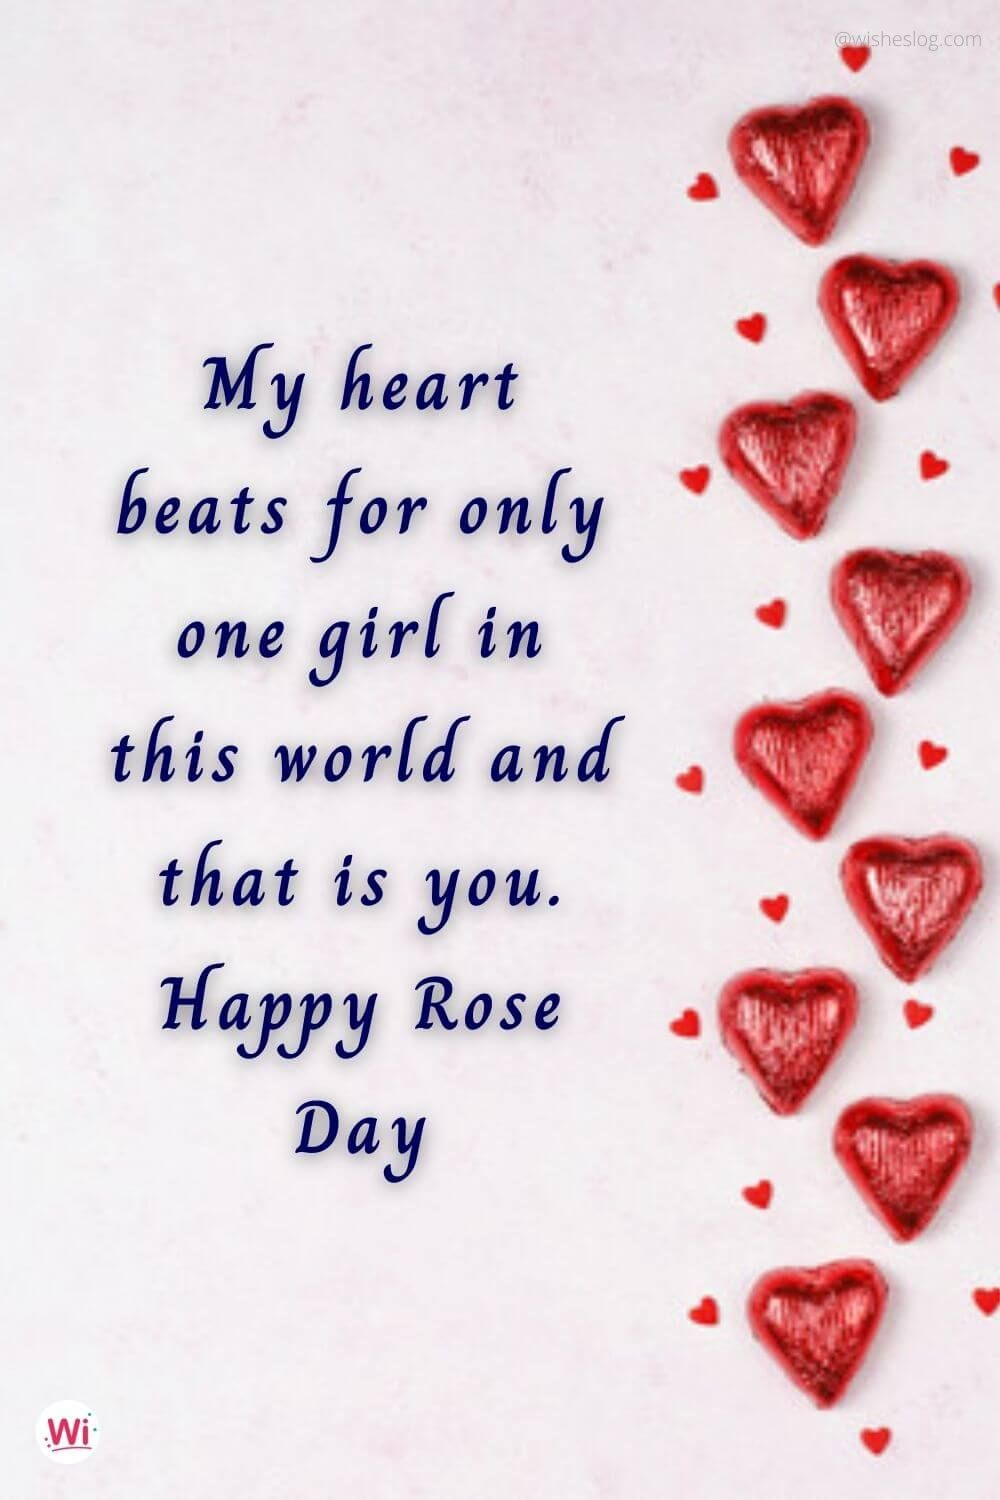 Best Rose Day Quotes In 2021 Day Wishes Message For Girlfriend Day Images photos love rose day 2021